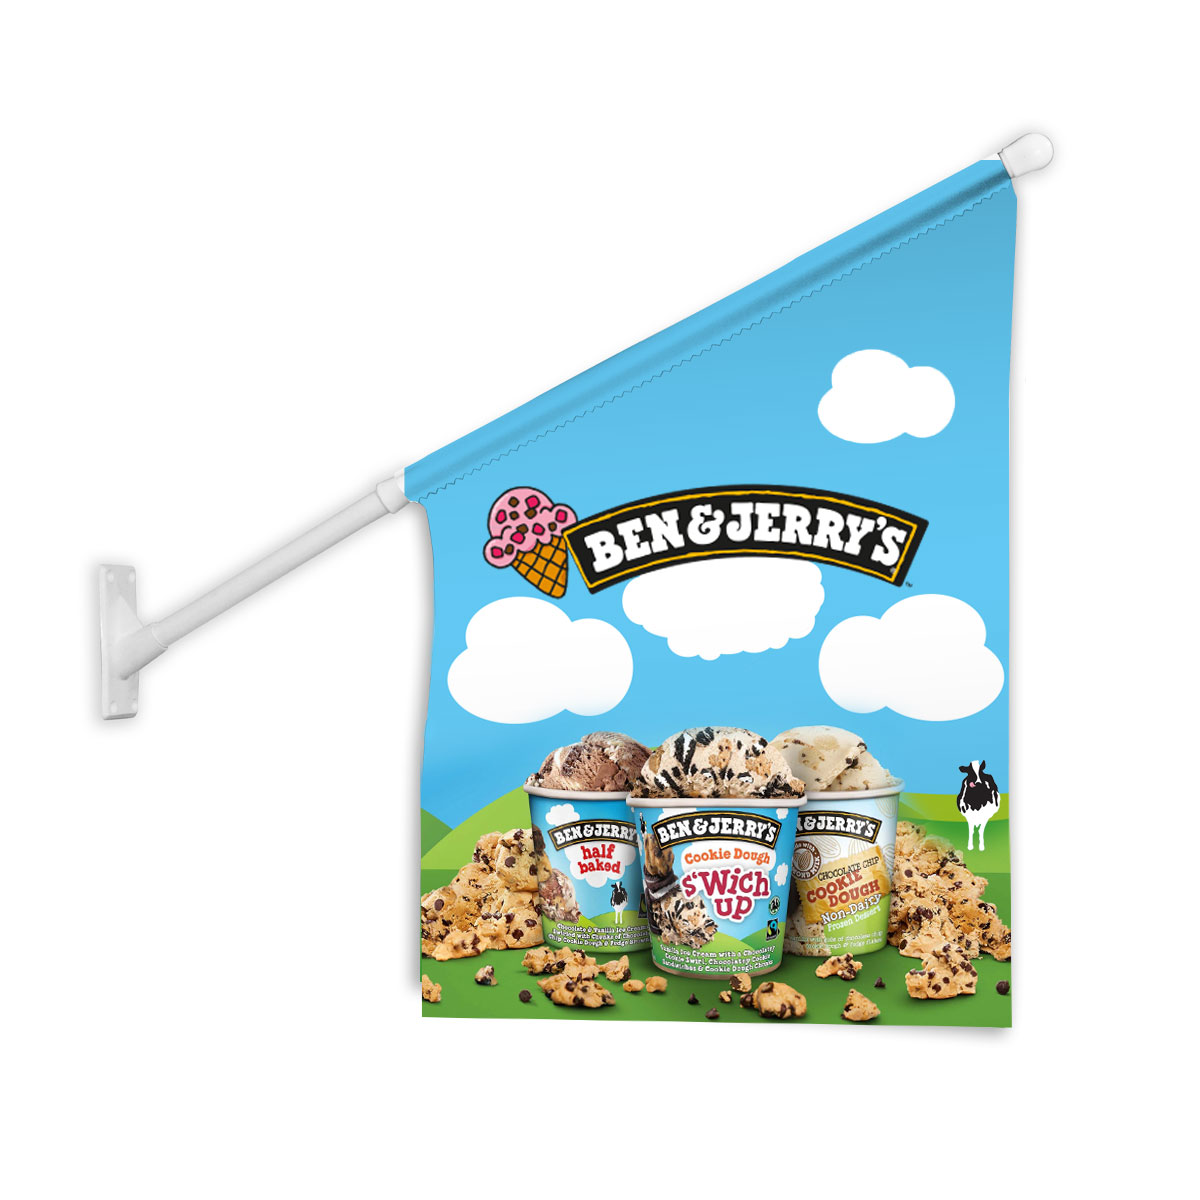 Wall Mounted Promotional Flags